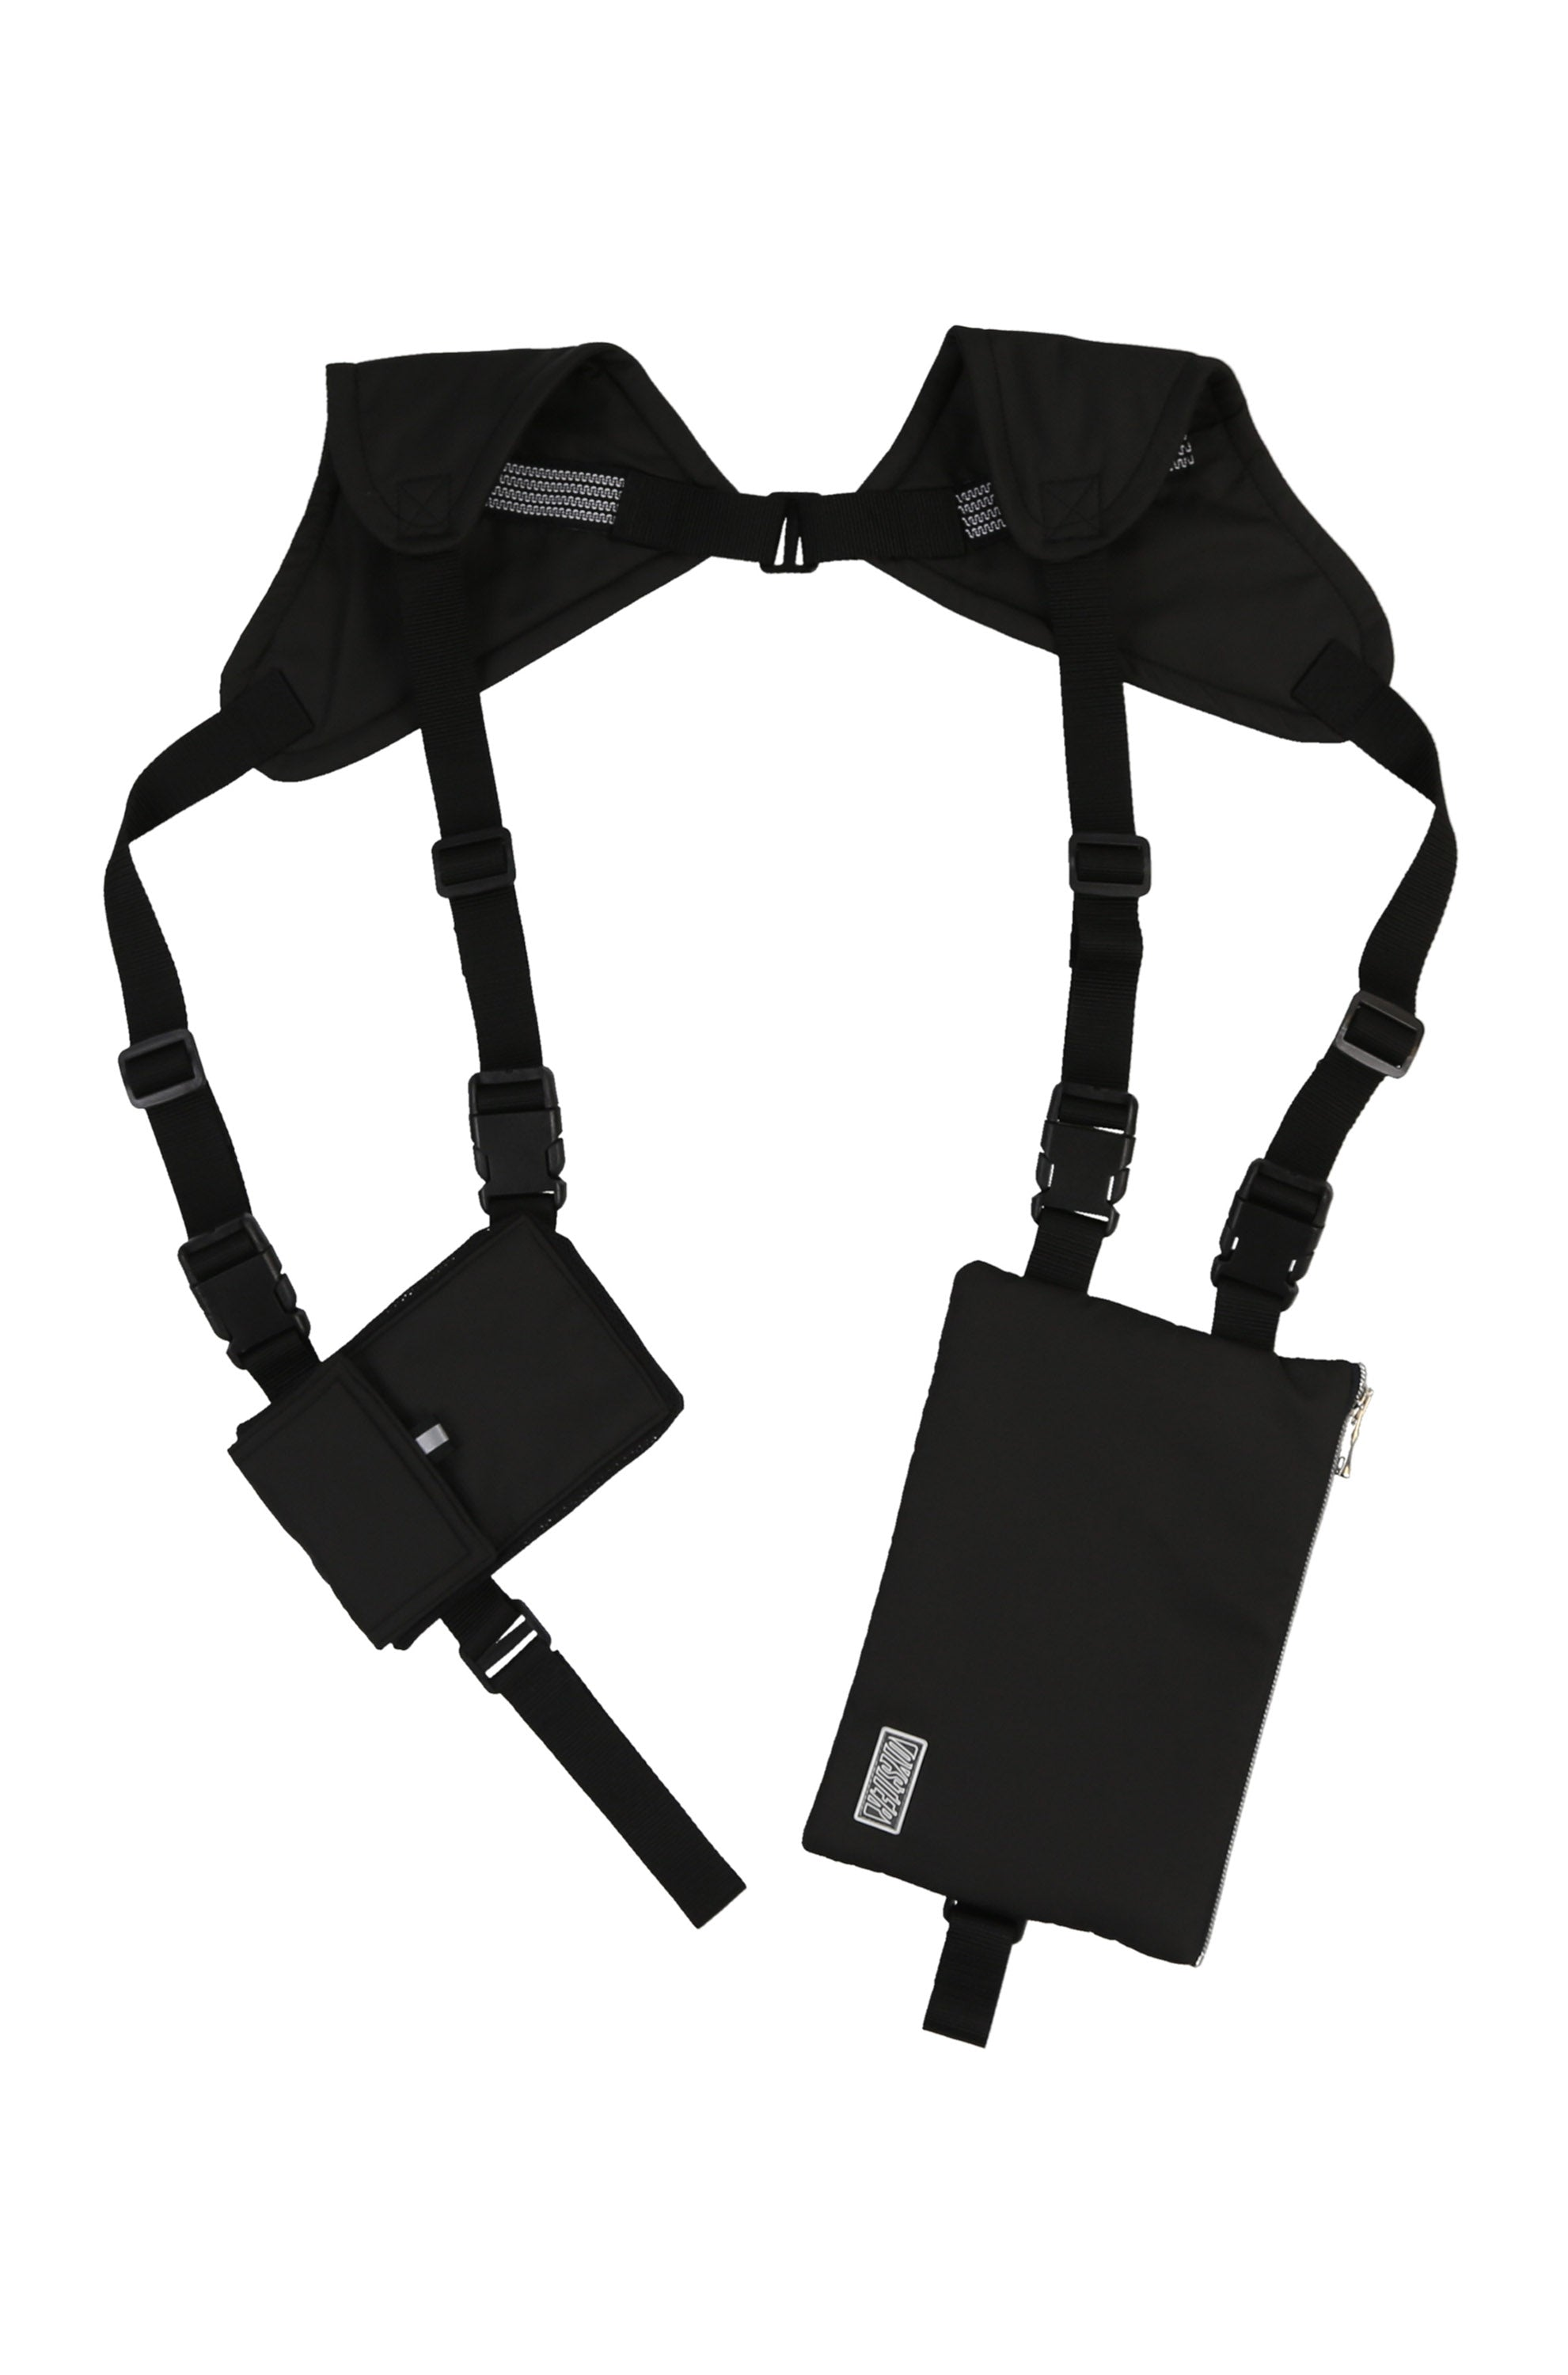 Oyster Travel Holster (Black)